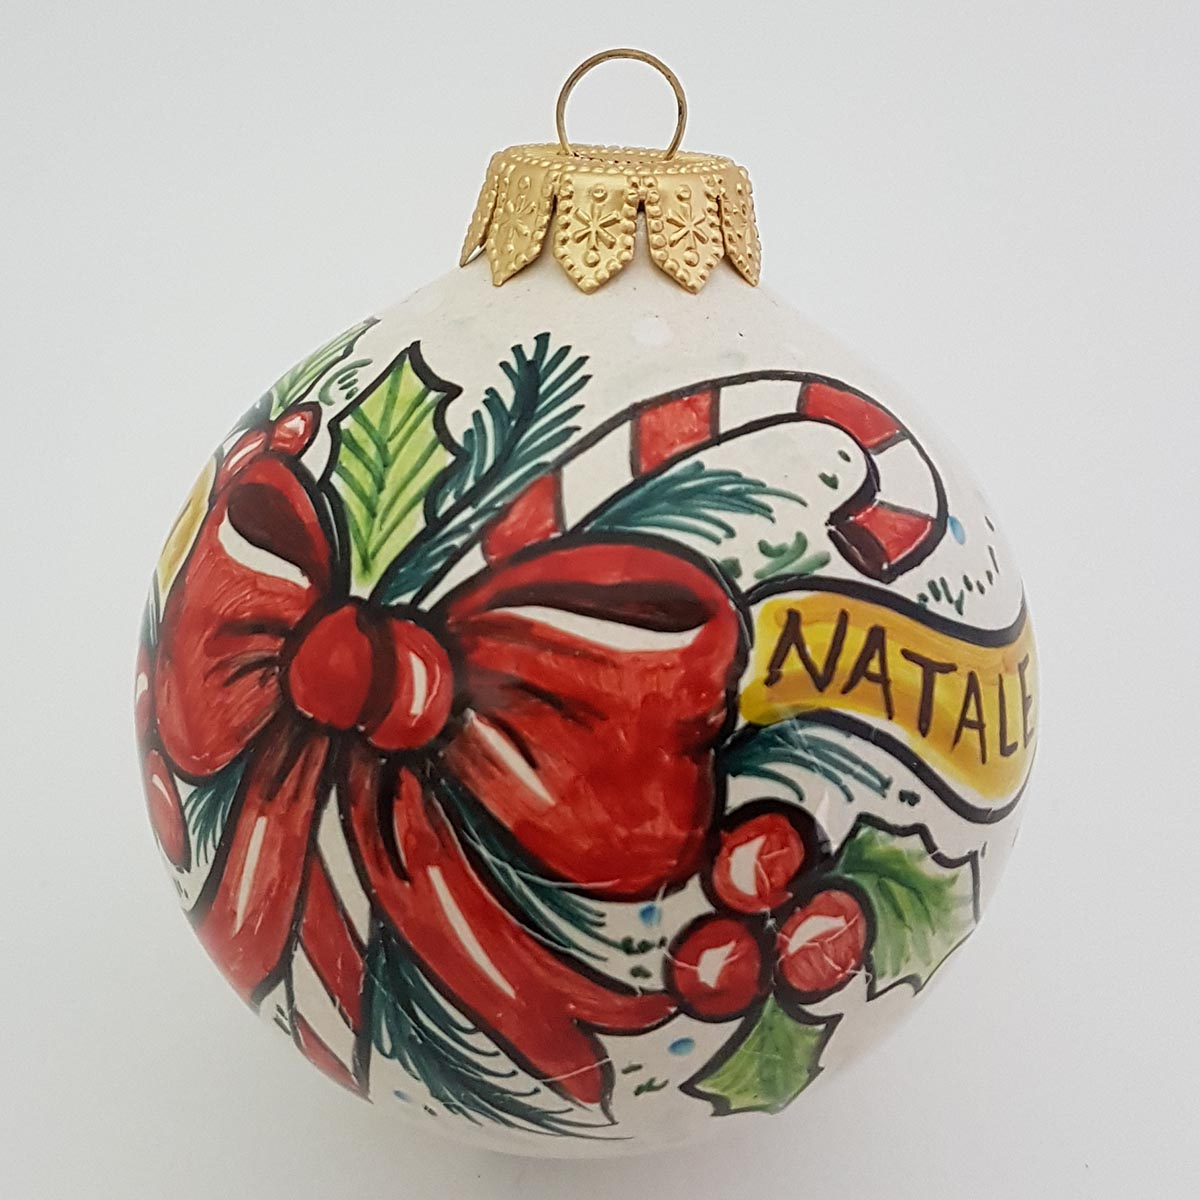 Natale by Ceramikale